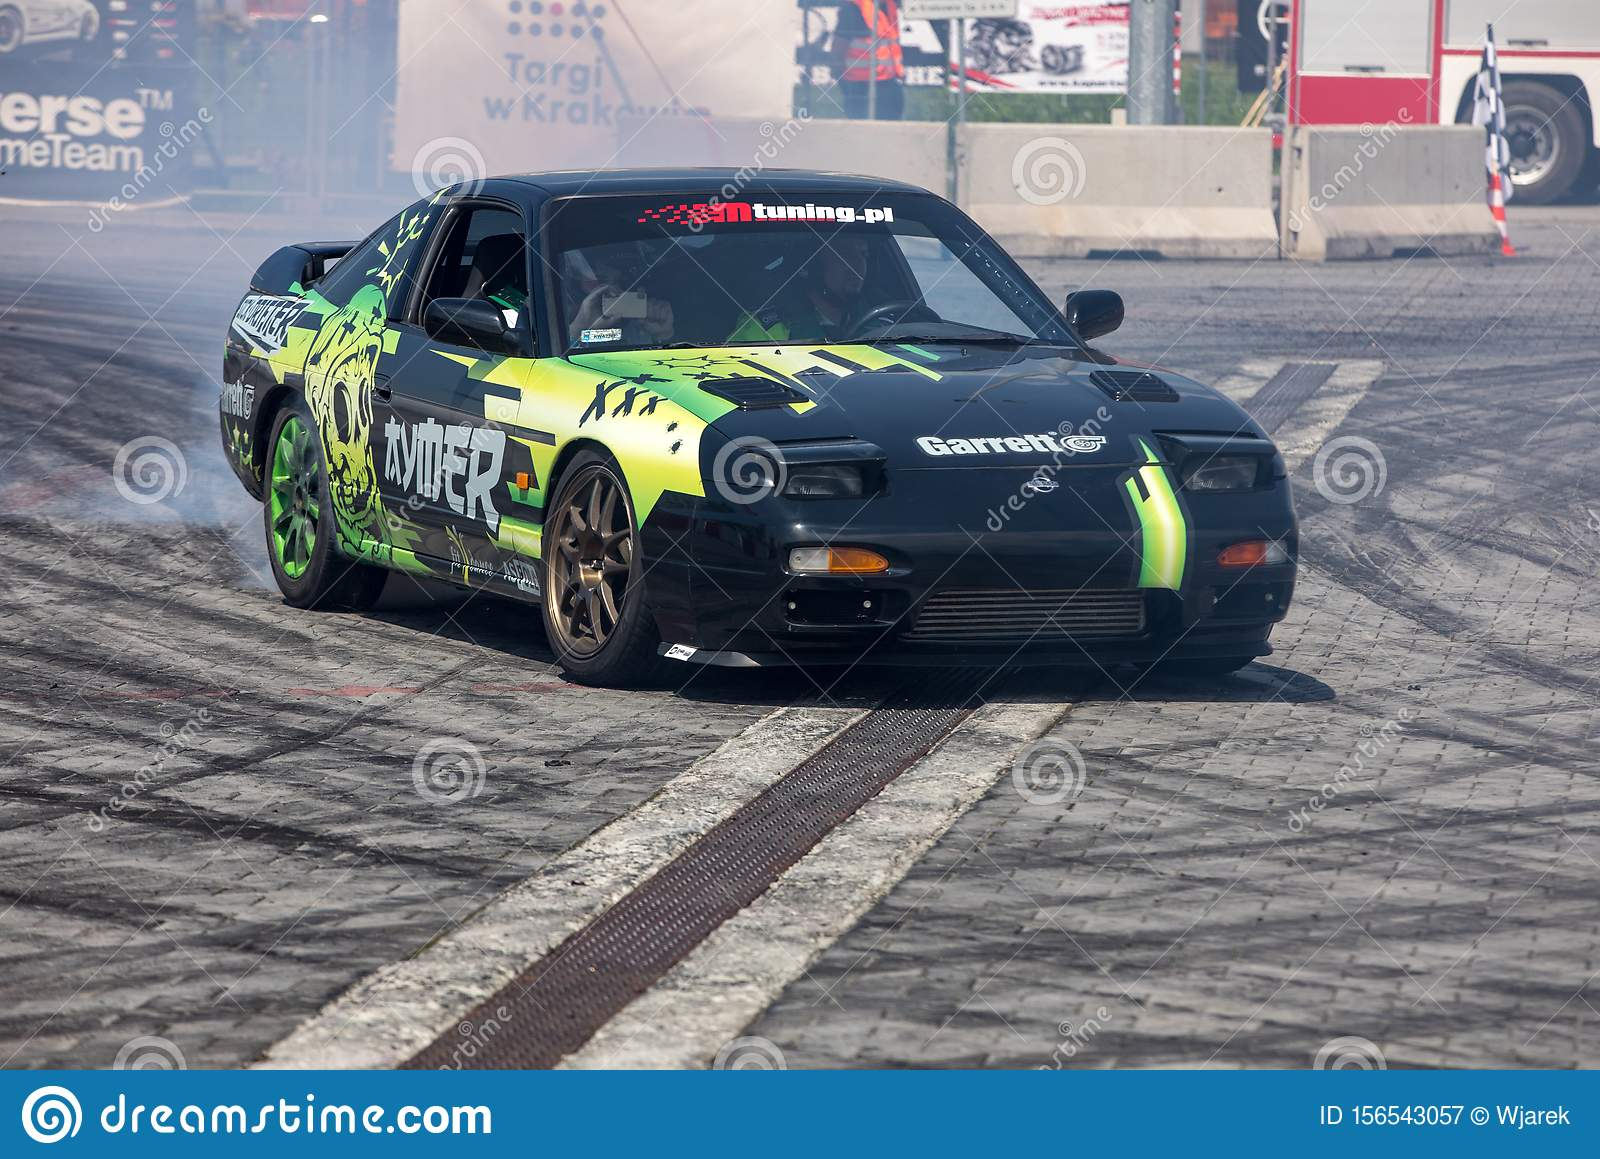 Drift Car In Action At 5th Edition Of Moto Show In Cracow Poland Editorial Photography Image Of Oversteers Drift 156543057